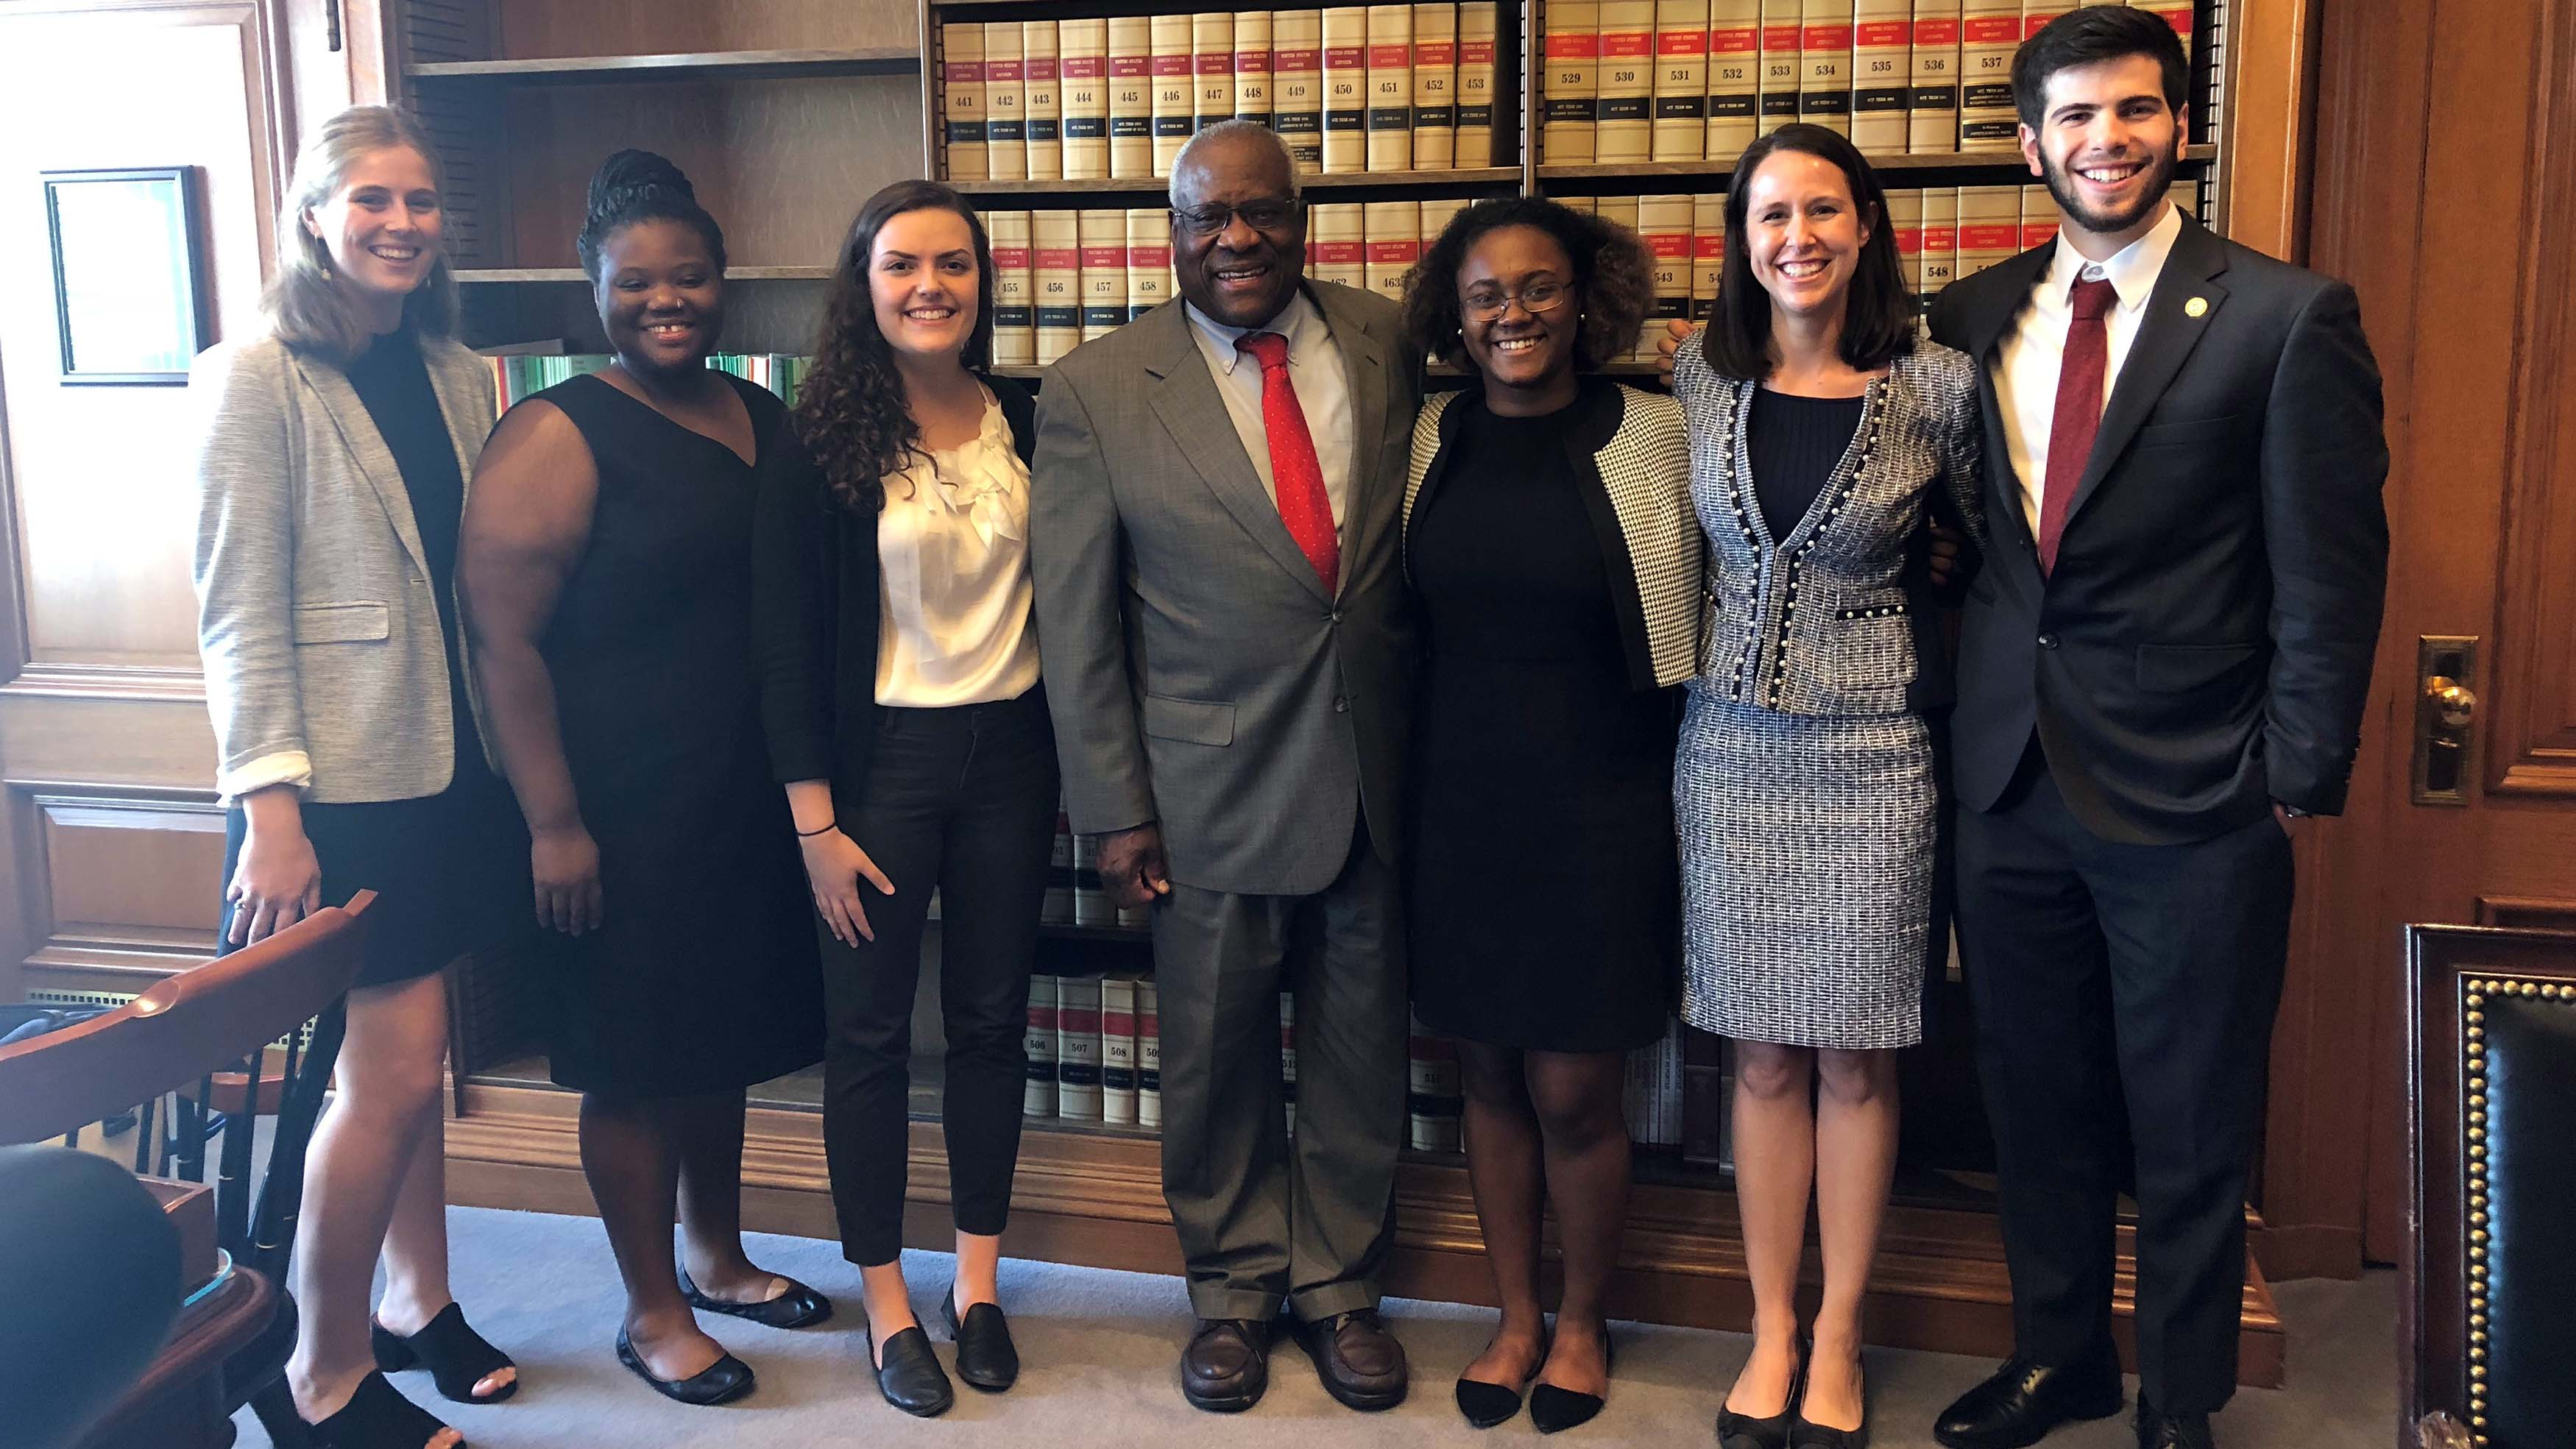 Field Students pose with Justice Clarence Thomas in front of a book case area